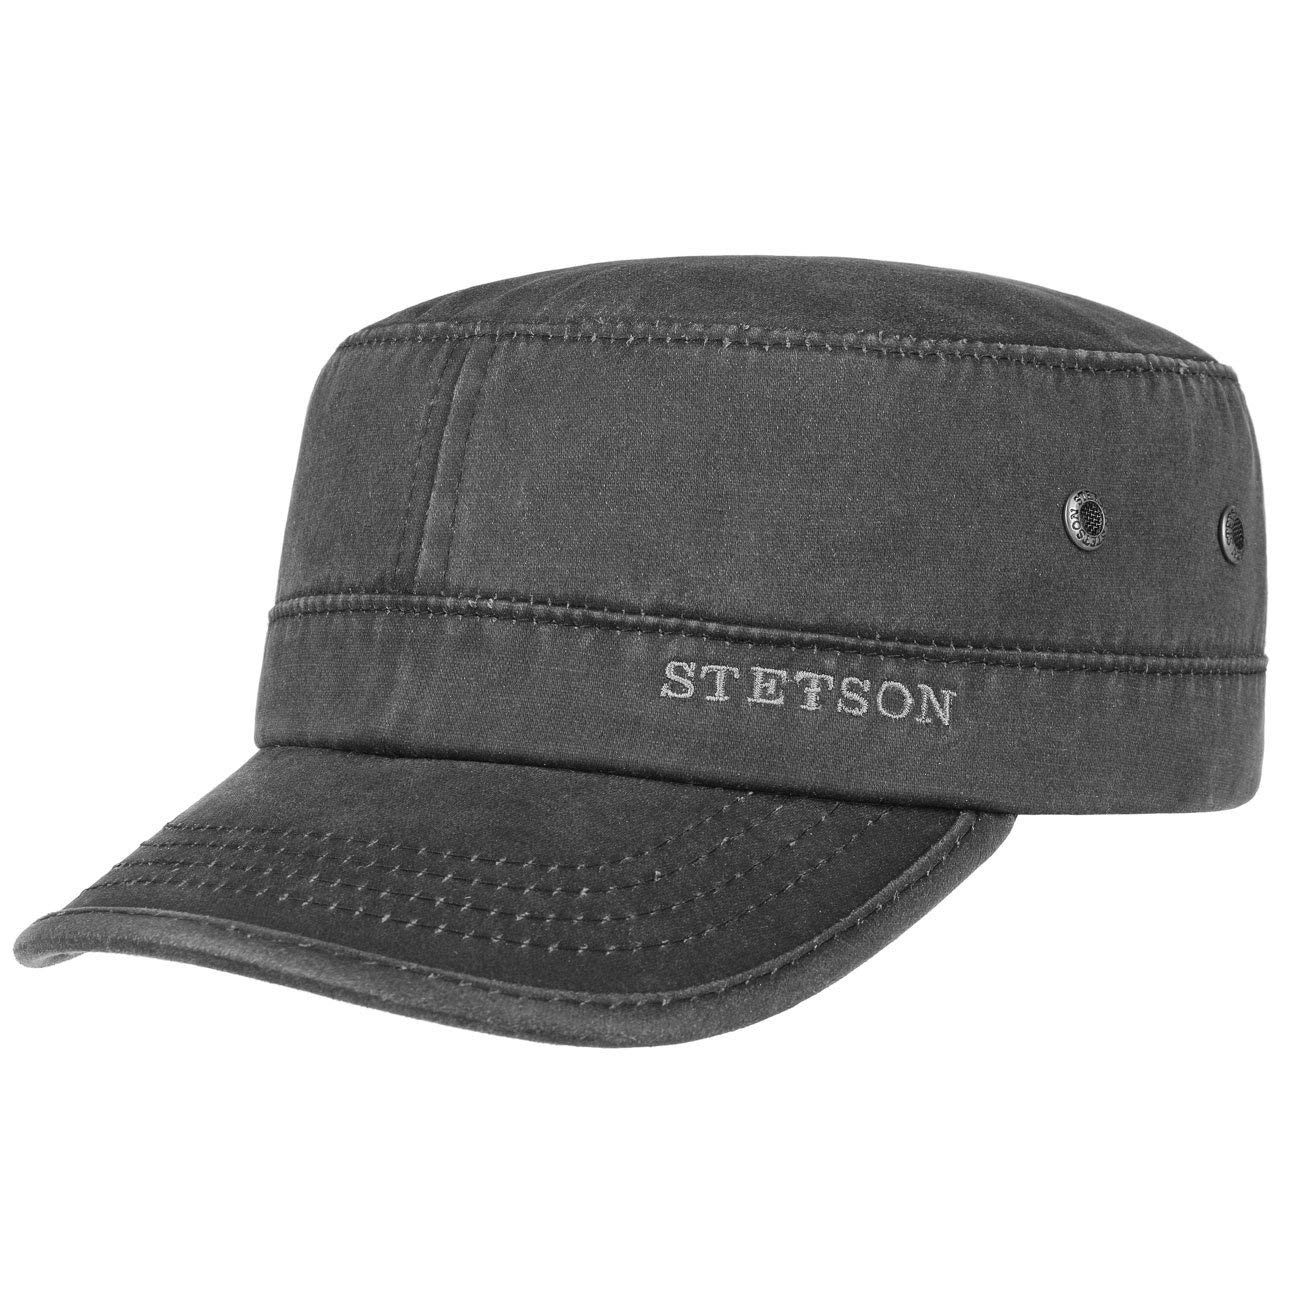 Stetson Datto Men's Army Cap | Water-Repellent Cotton Cap | Summer/Winter | Army Cap with UV 40+ Sun Protection | Washed Leather Look (Oilskin) | Urban Cap